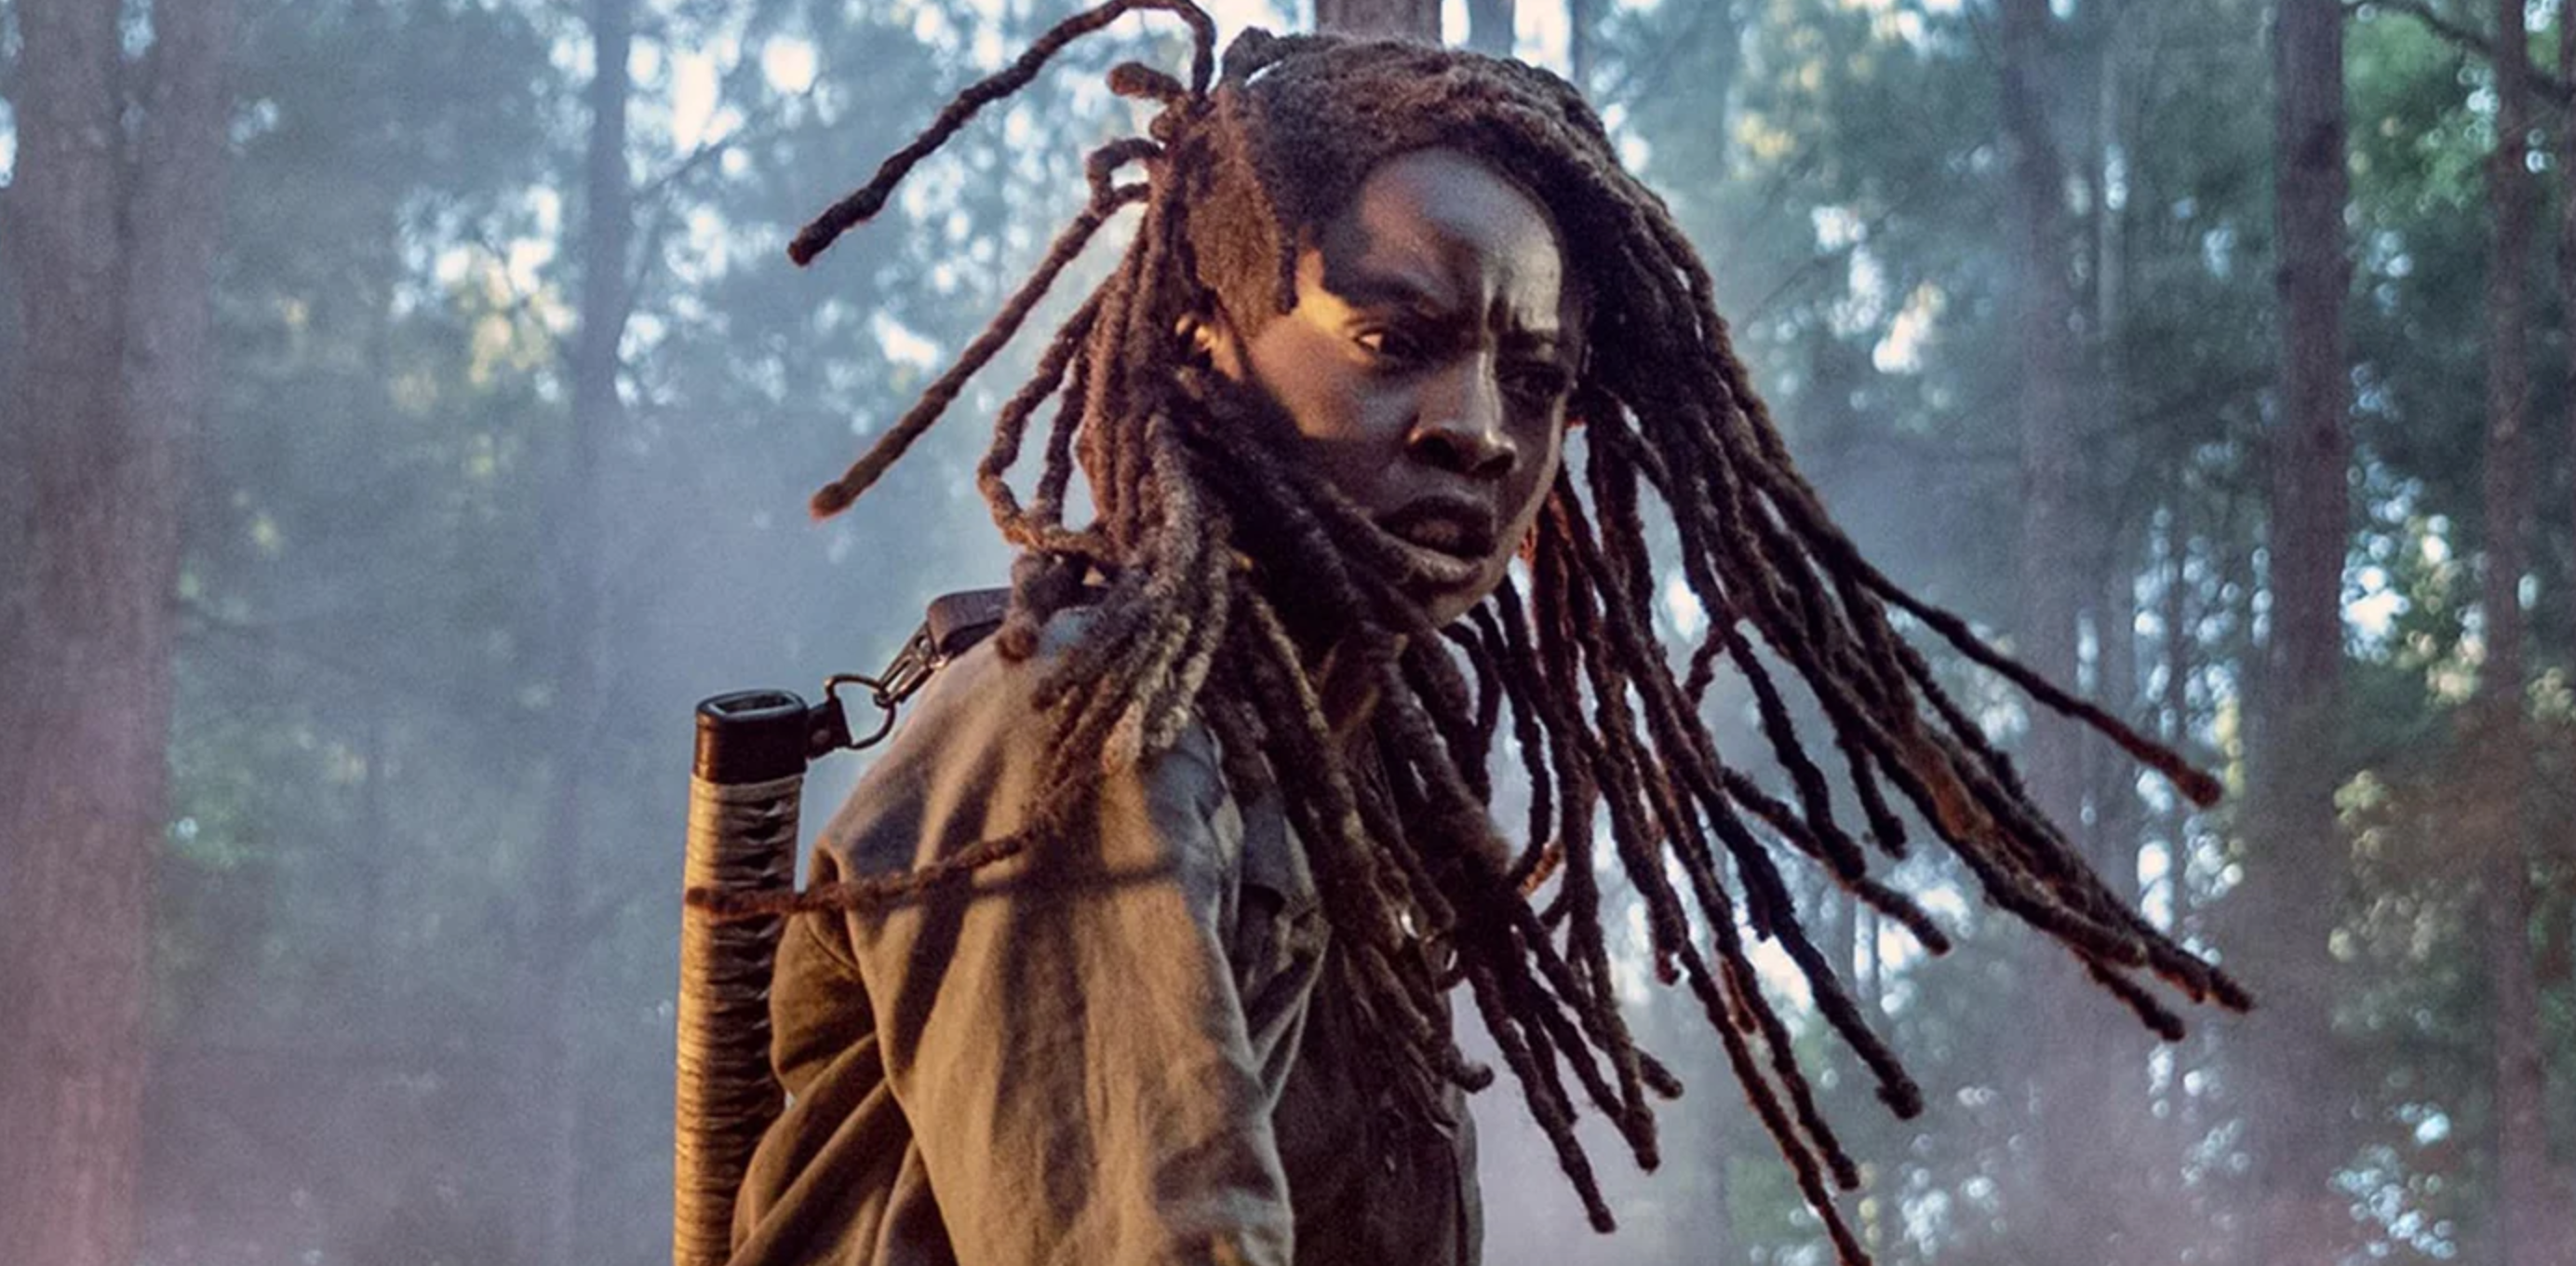 'The Walking Dead' Season 10, Ep 1 Review: 'Lines We Cross' Has a Big Fire and a Lot of Talking